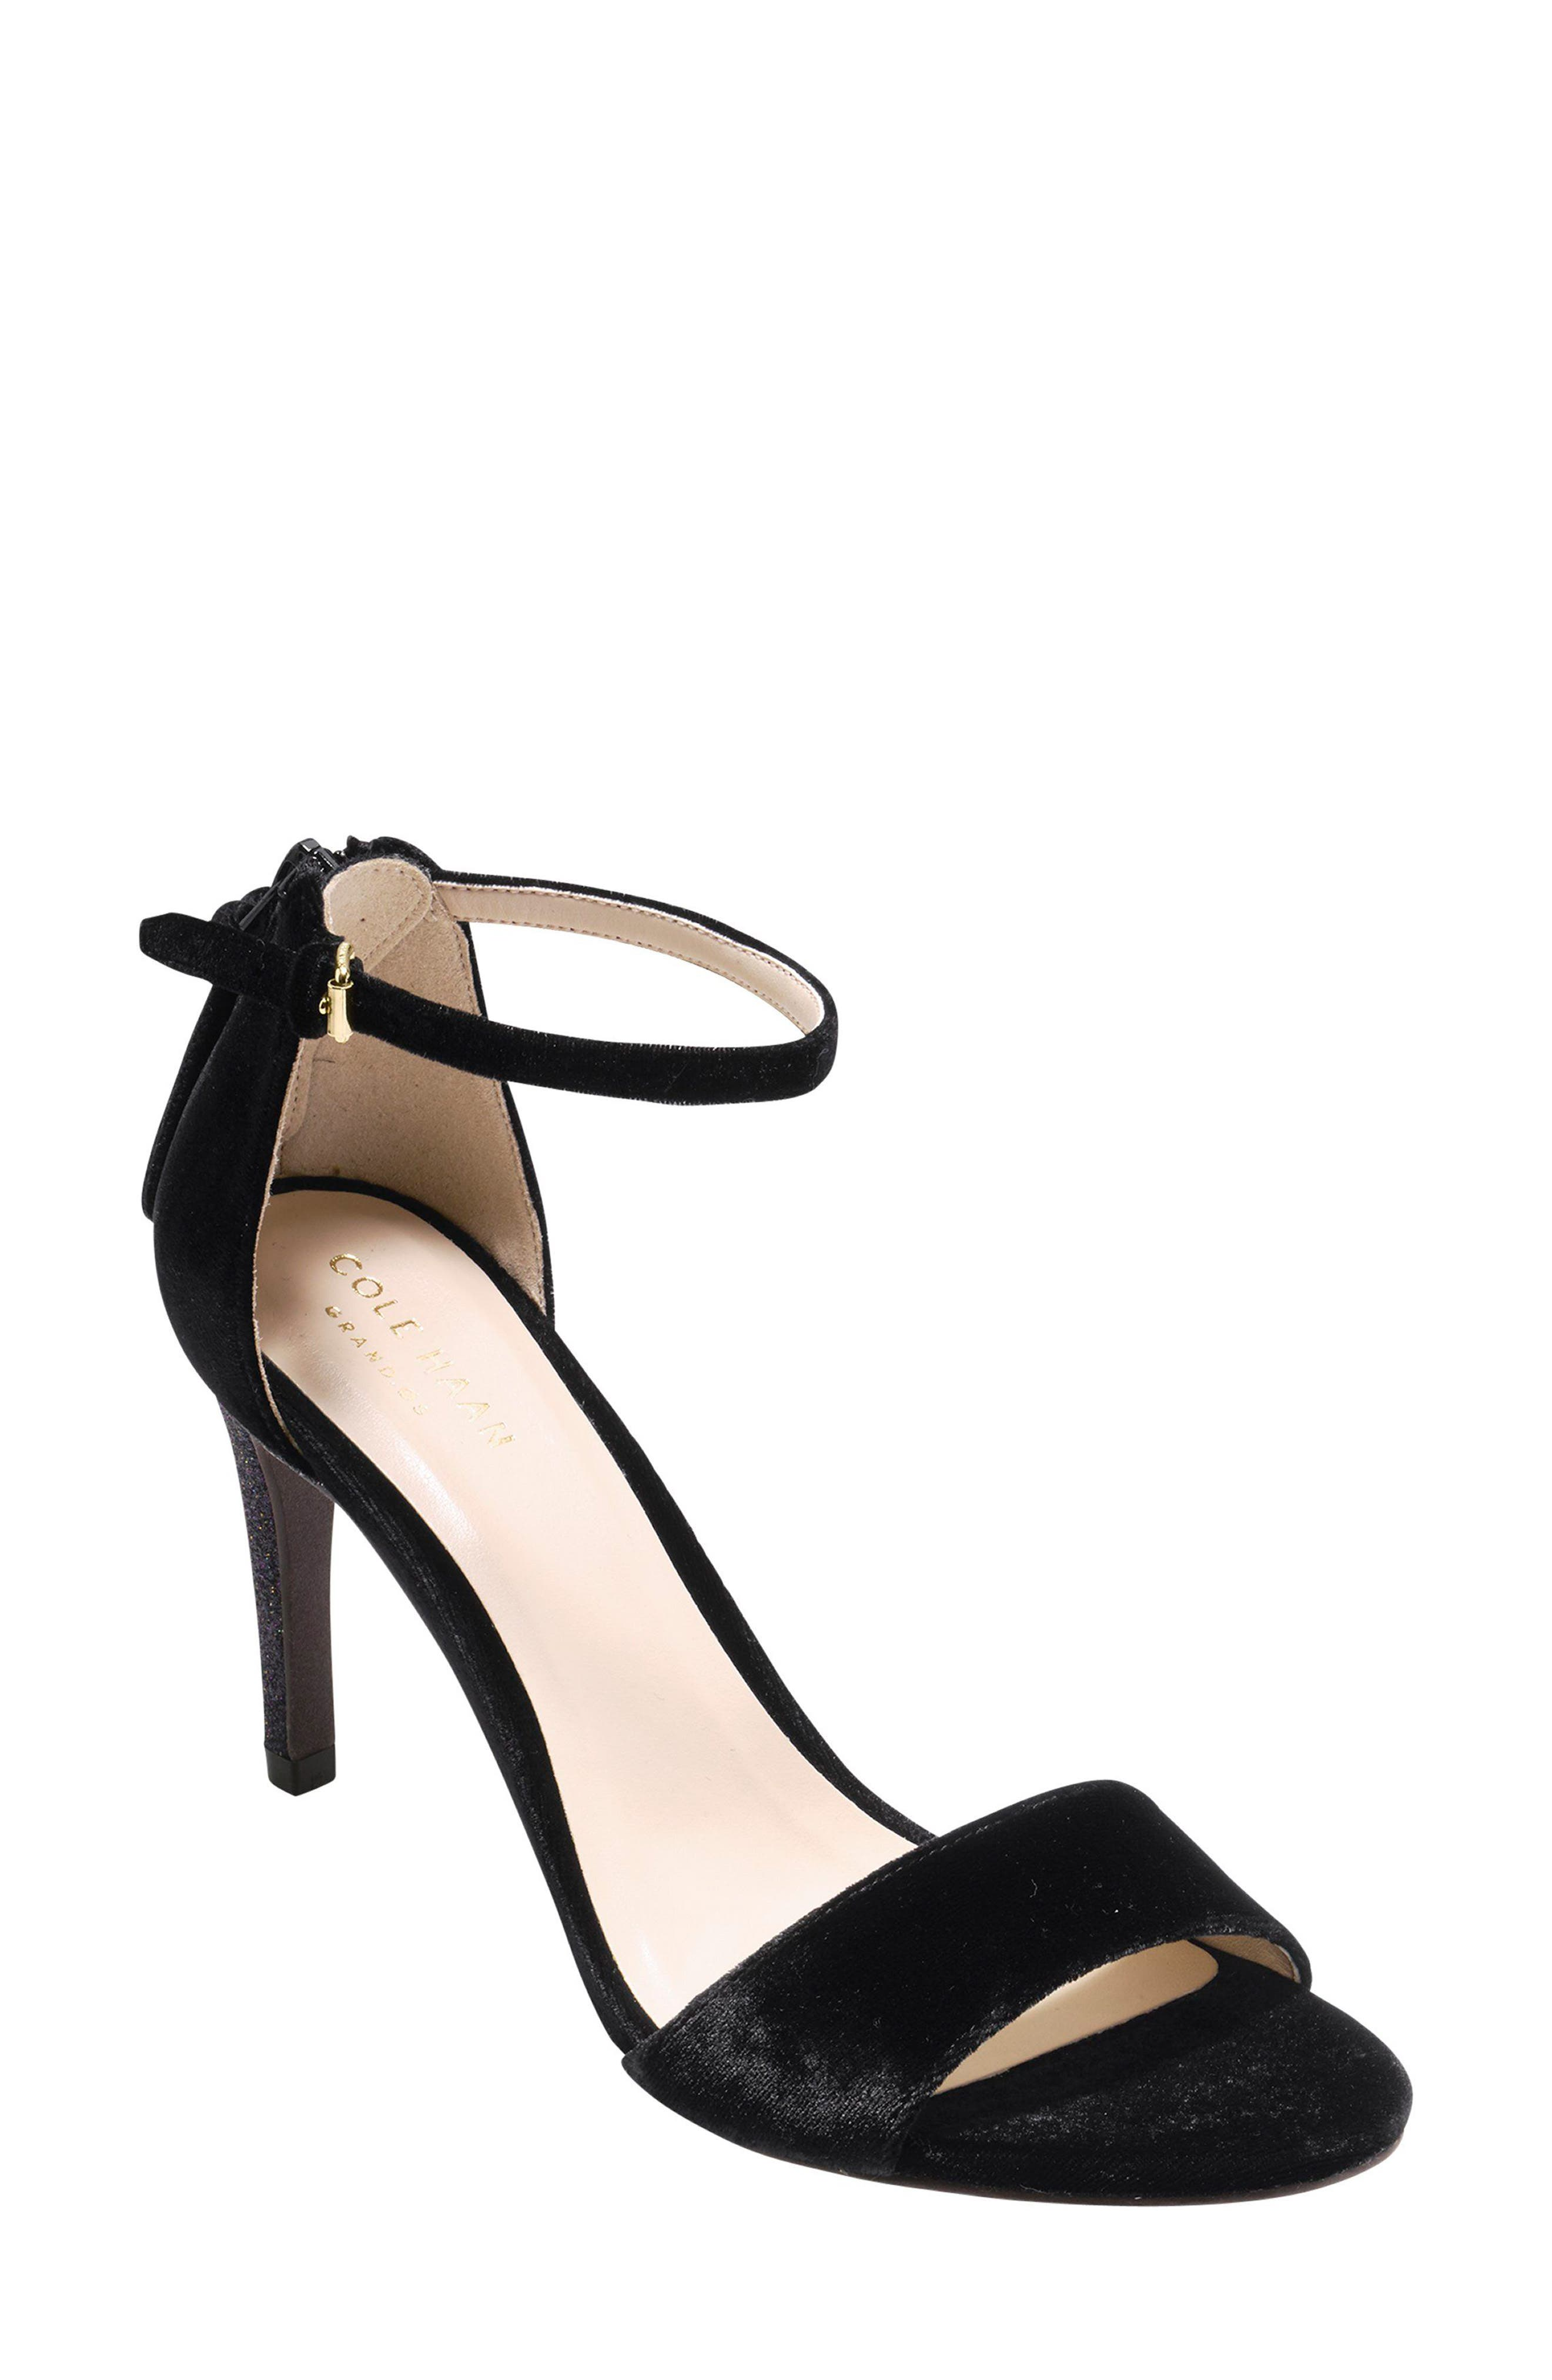 Clara Grand Ankle Strap Sandal,                         Main,                         color, 001